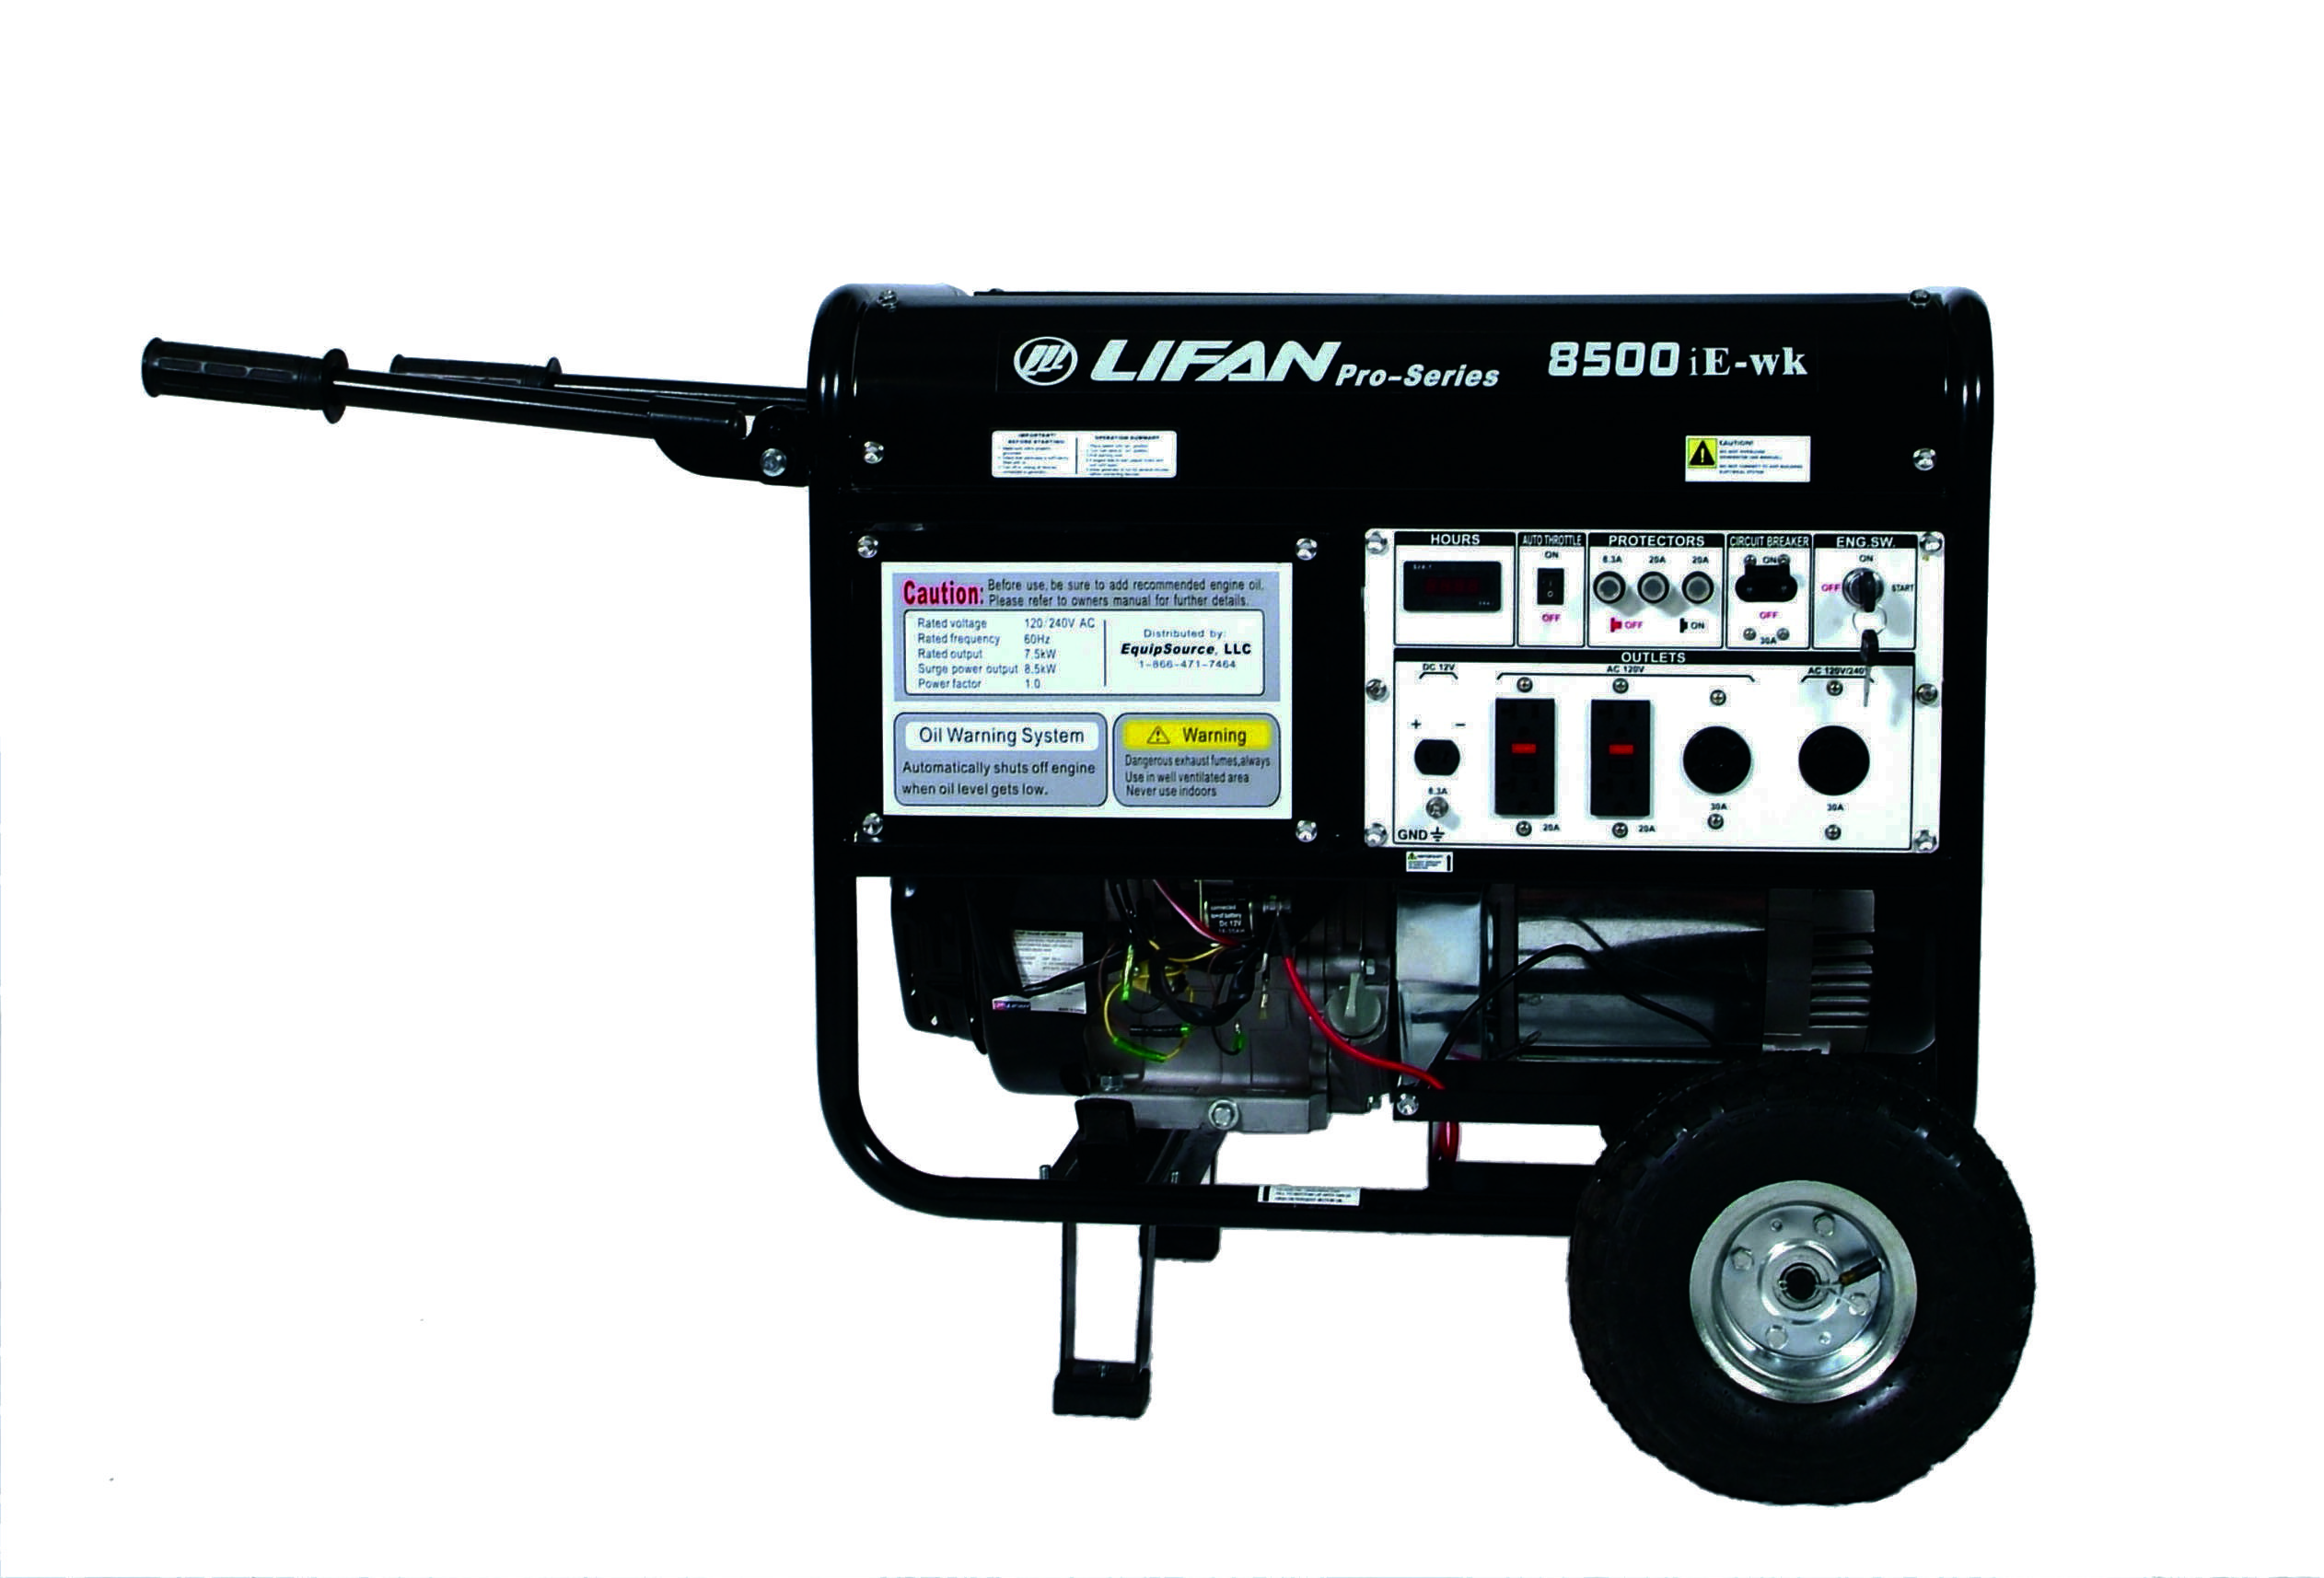 Lifan Generator Parts Diagram Electrical Wiring 200cc Pro Series 8500ie Power Usa Rh Lifanpowerusa Com Engine Breakdown